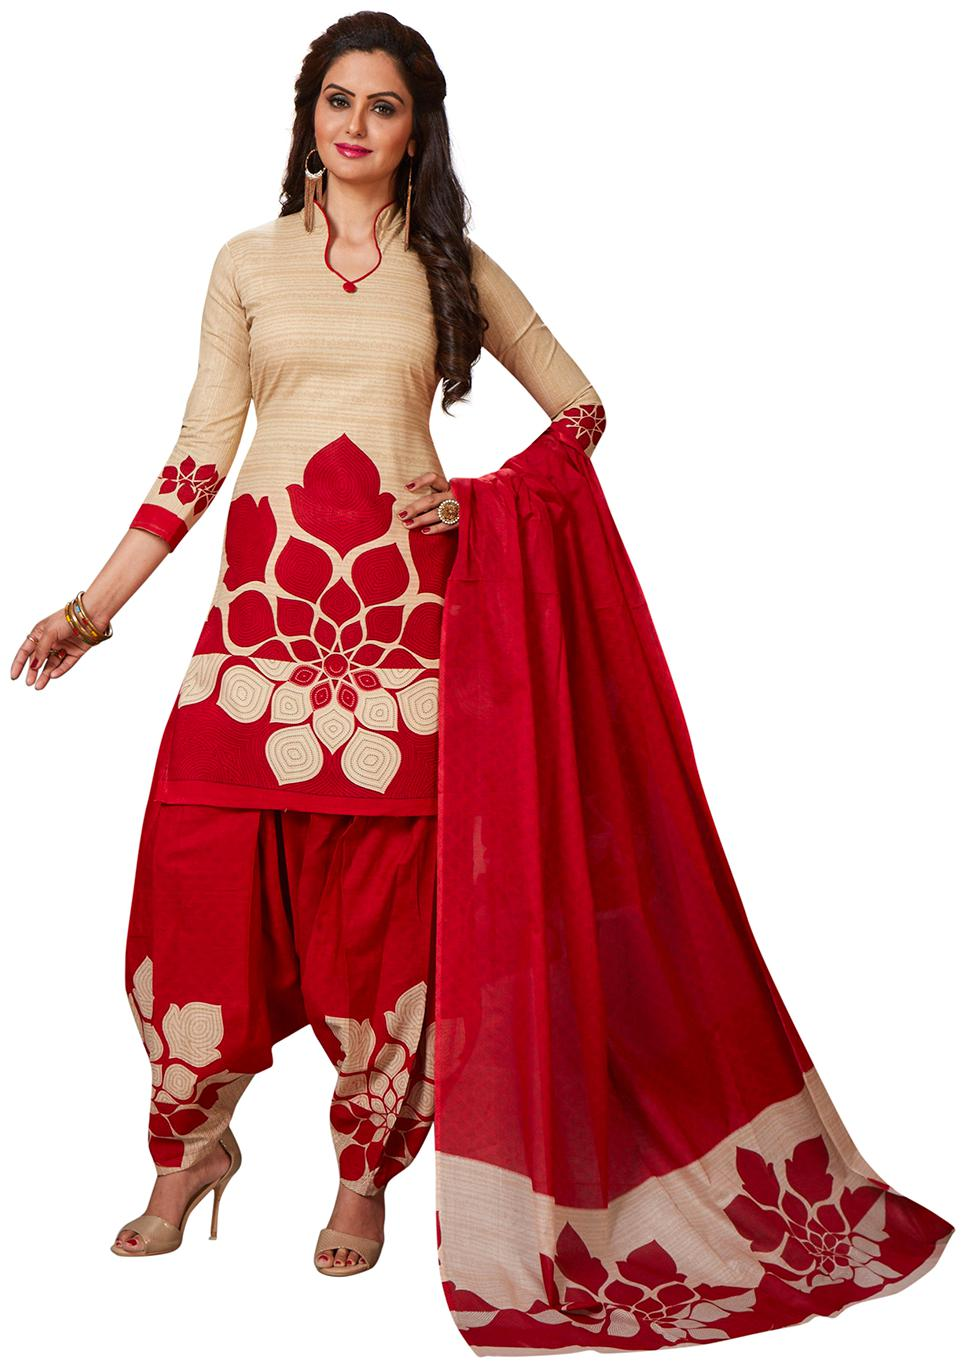 Jevi Prints Women's Synthetic Crepe Beige   Red Floral Printed Salwar Suit Dupatta Material by Jevi Prints